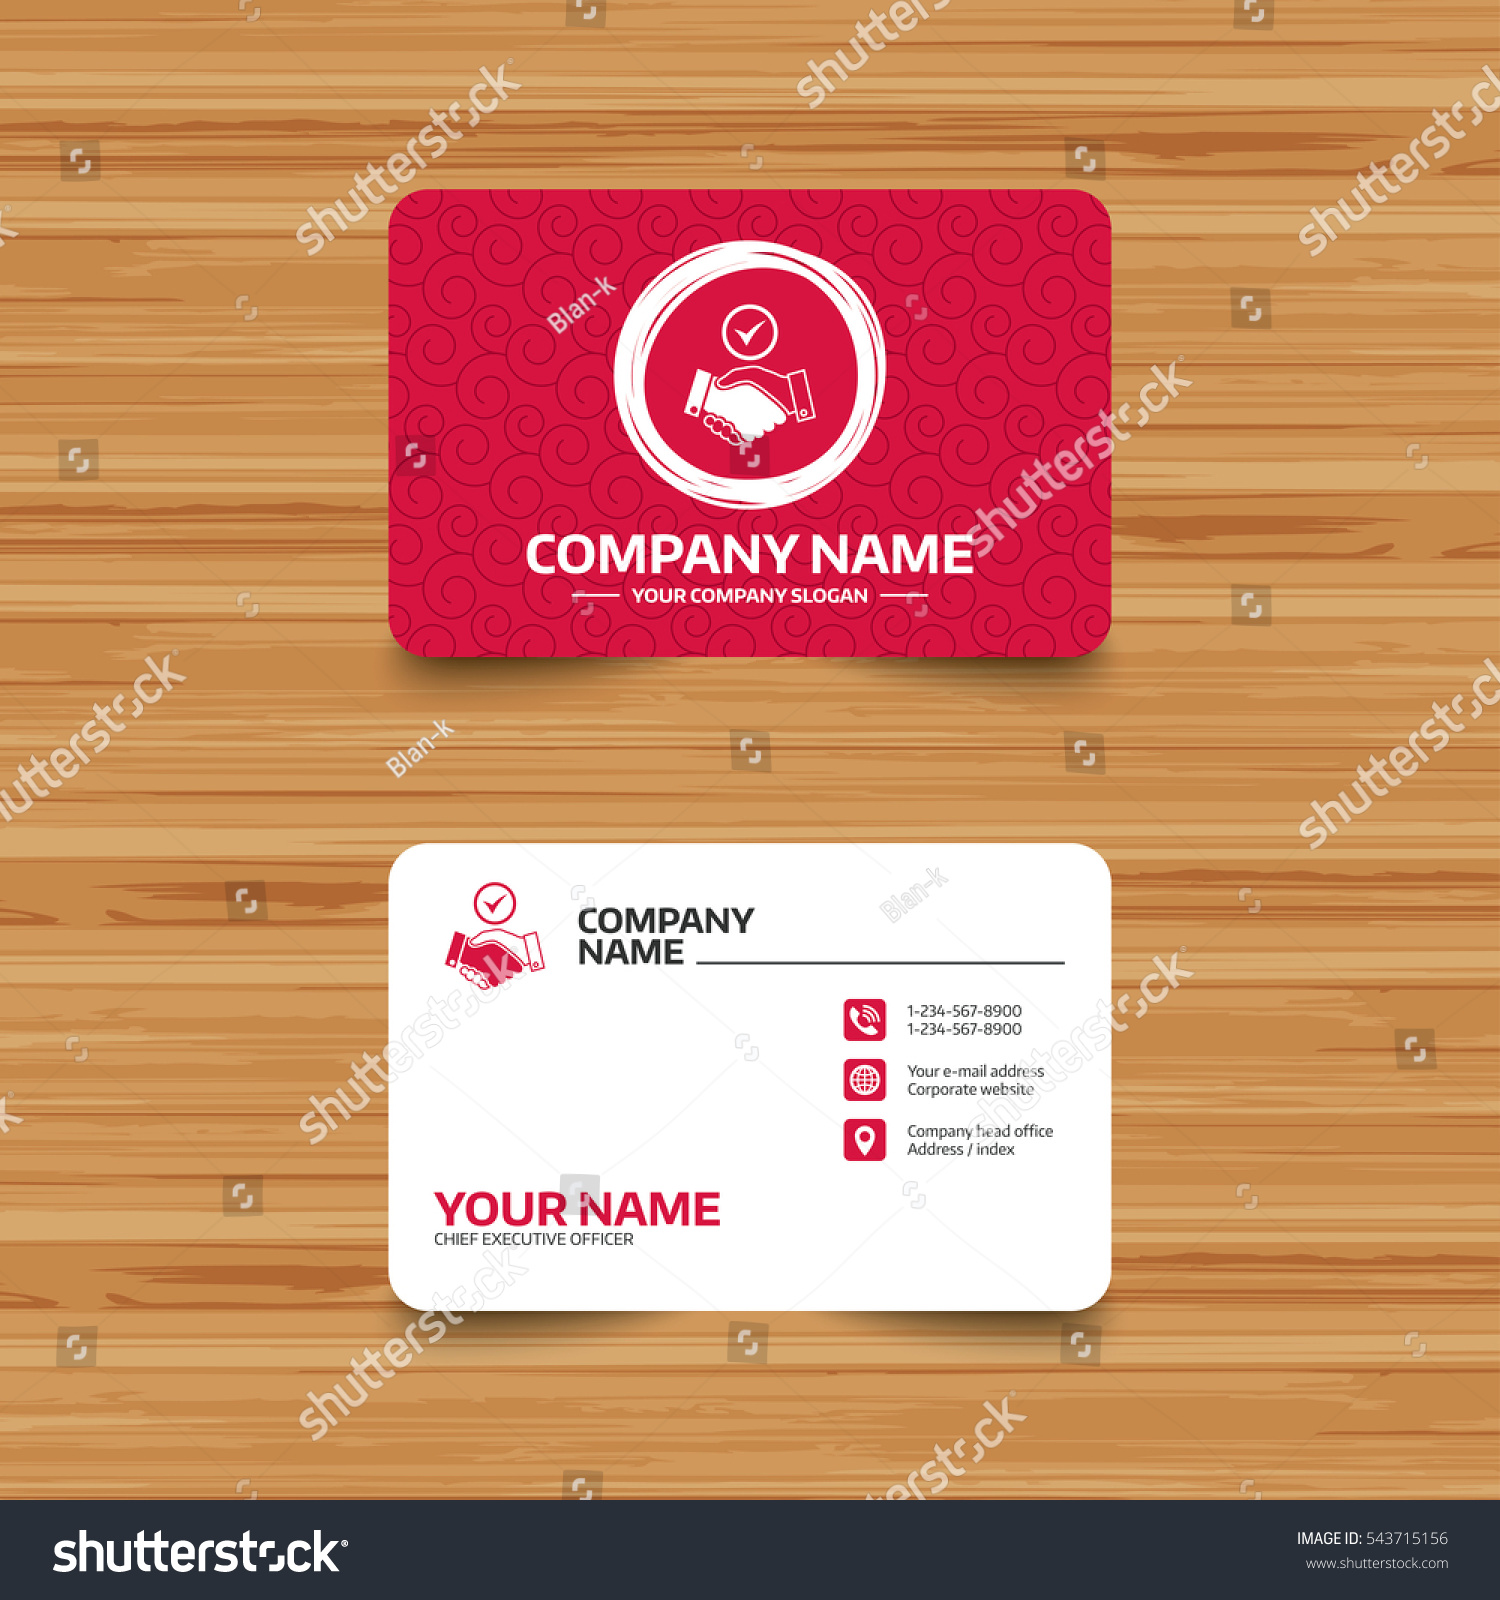 Paypal prepaid business card image collections free business cards business check card gallery free business cards business card template texture tick handshake stock vector business magicingreecefo Images